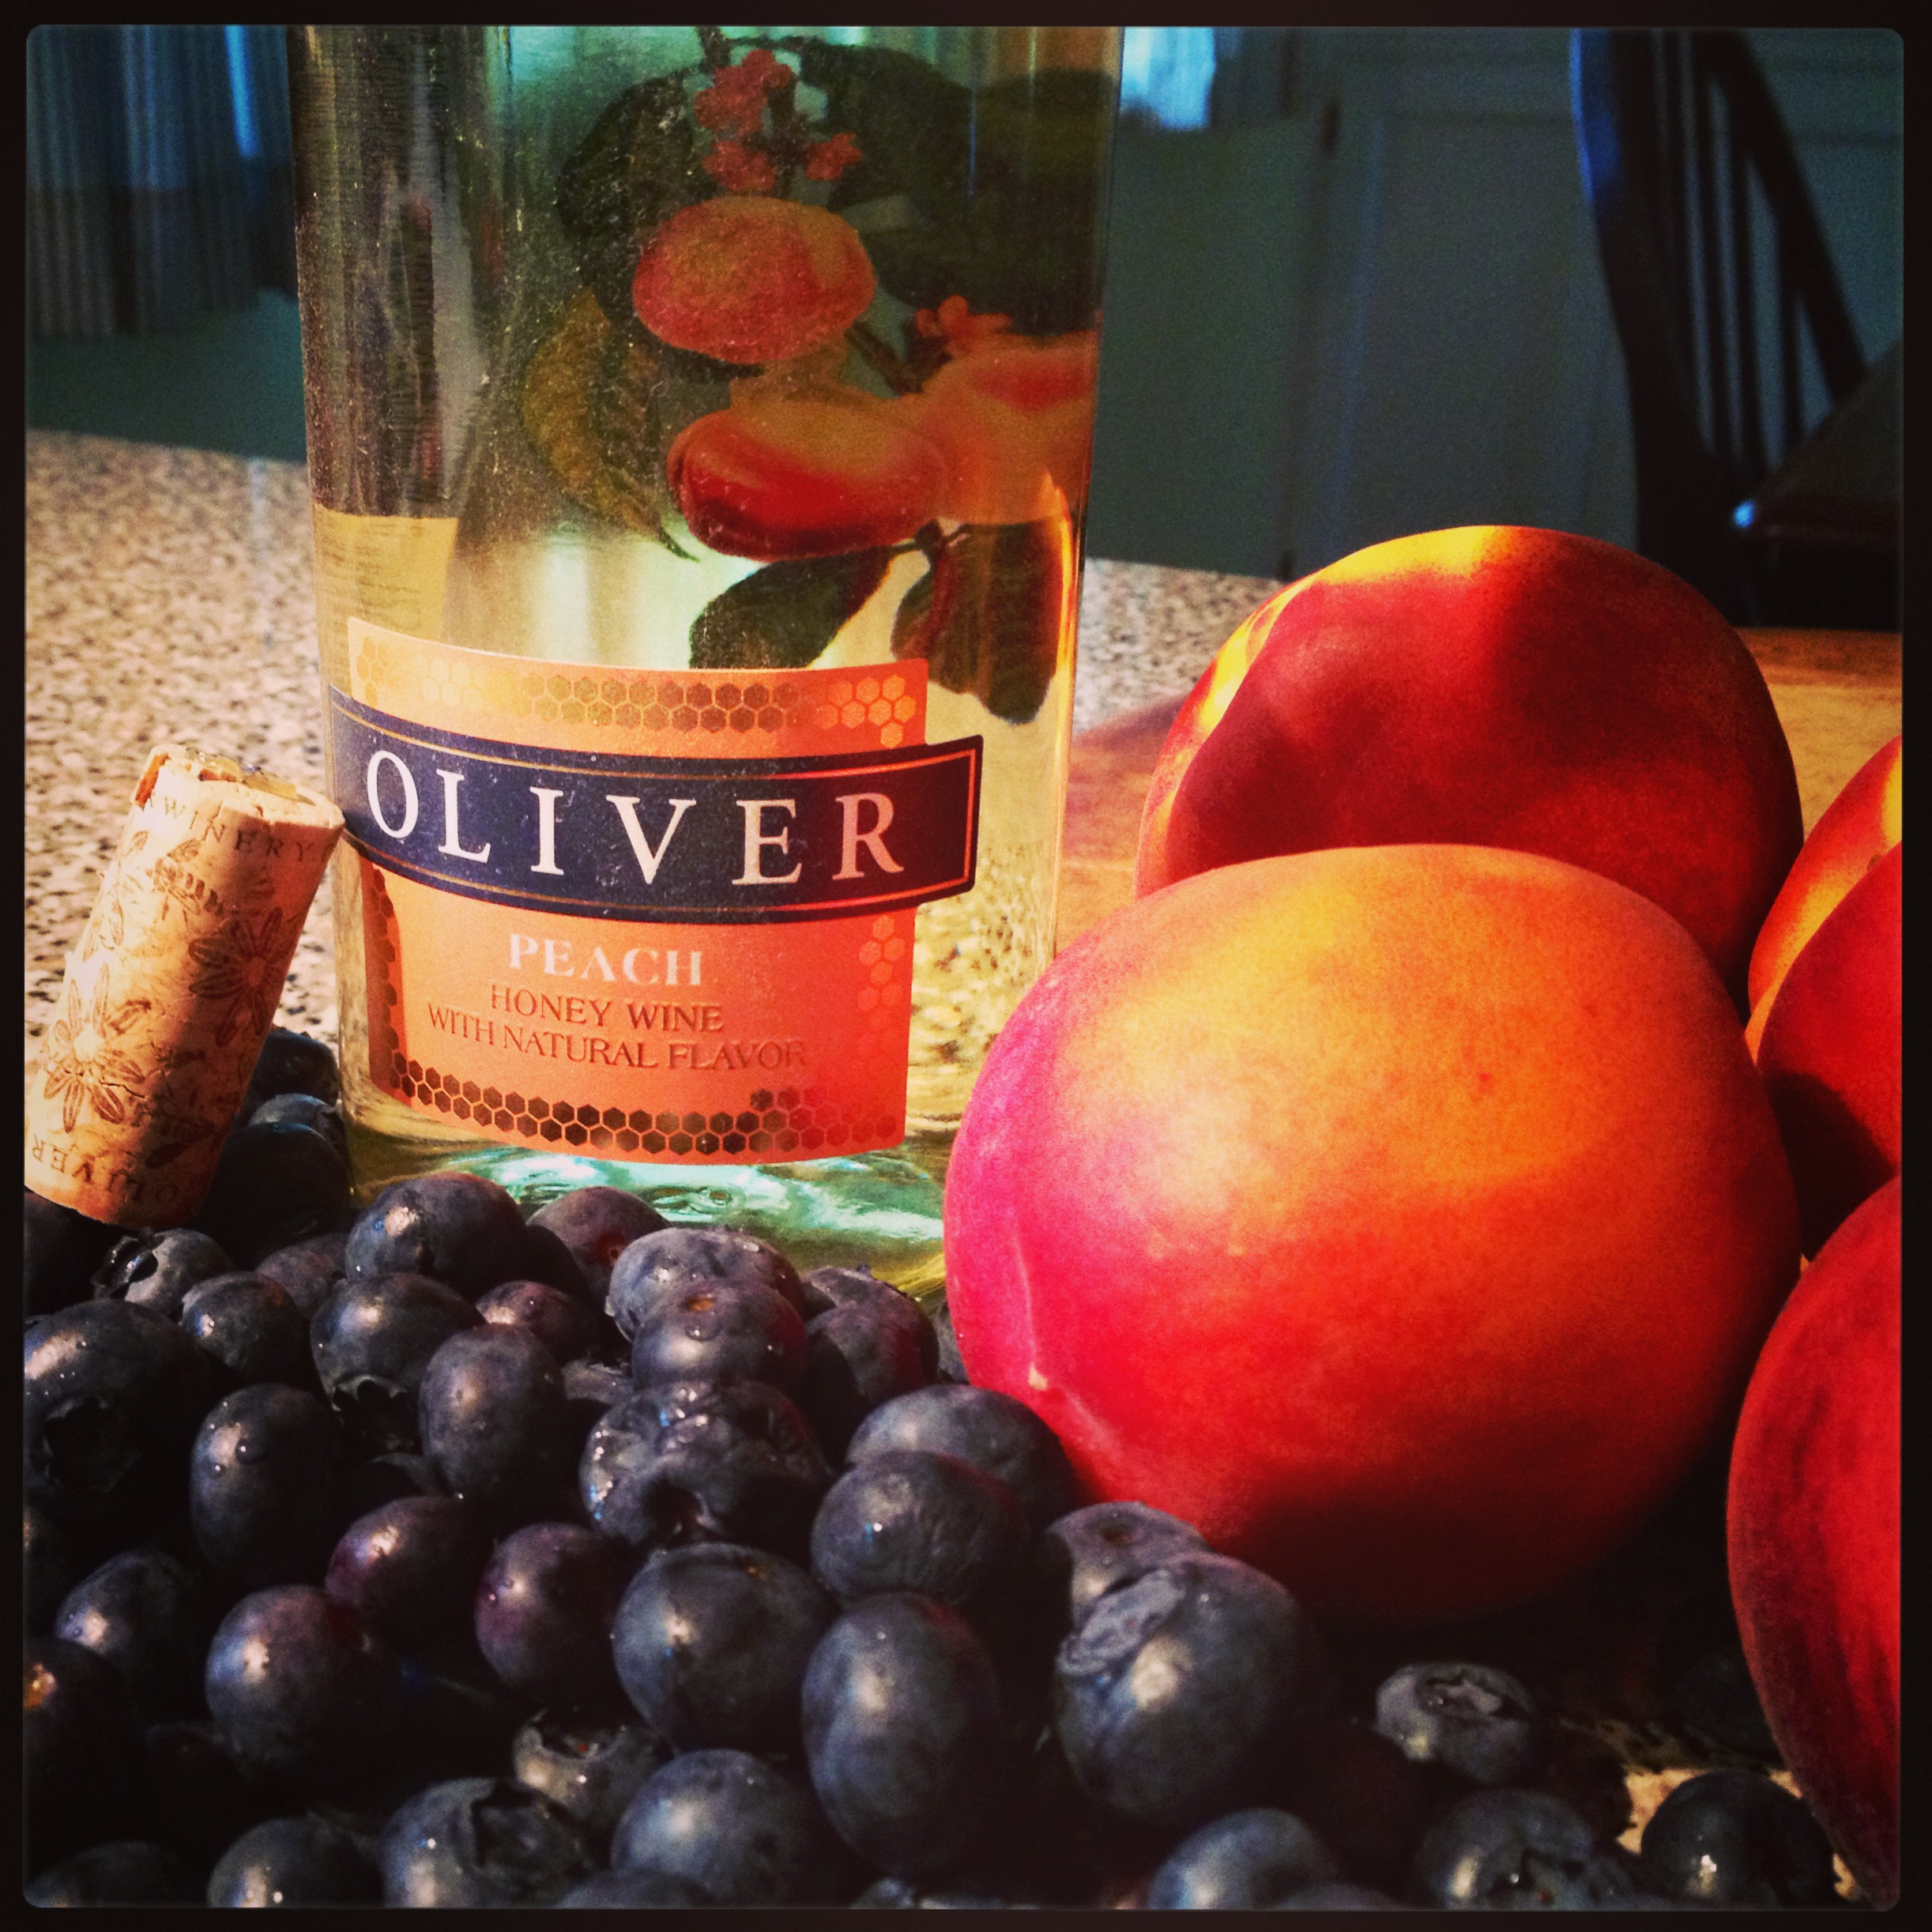 Oliver Winery Peach Honey Wine and Blueberry Galette - Basilmomma